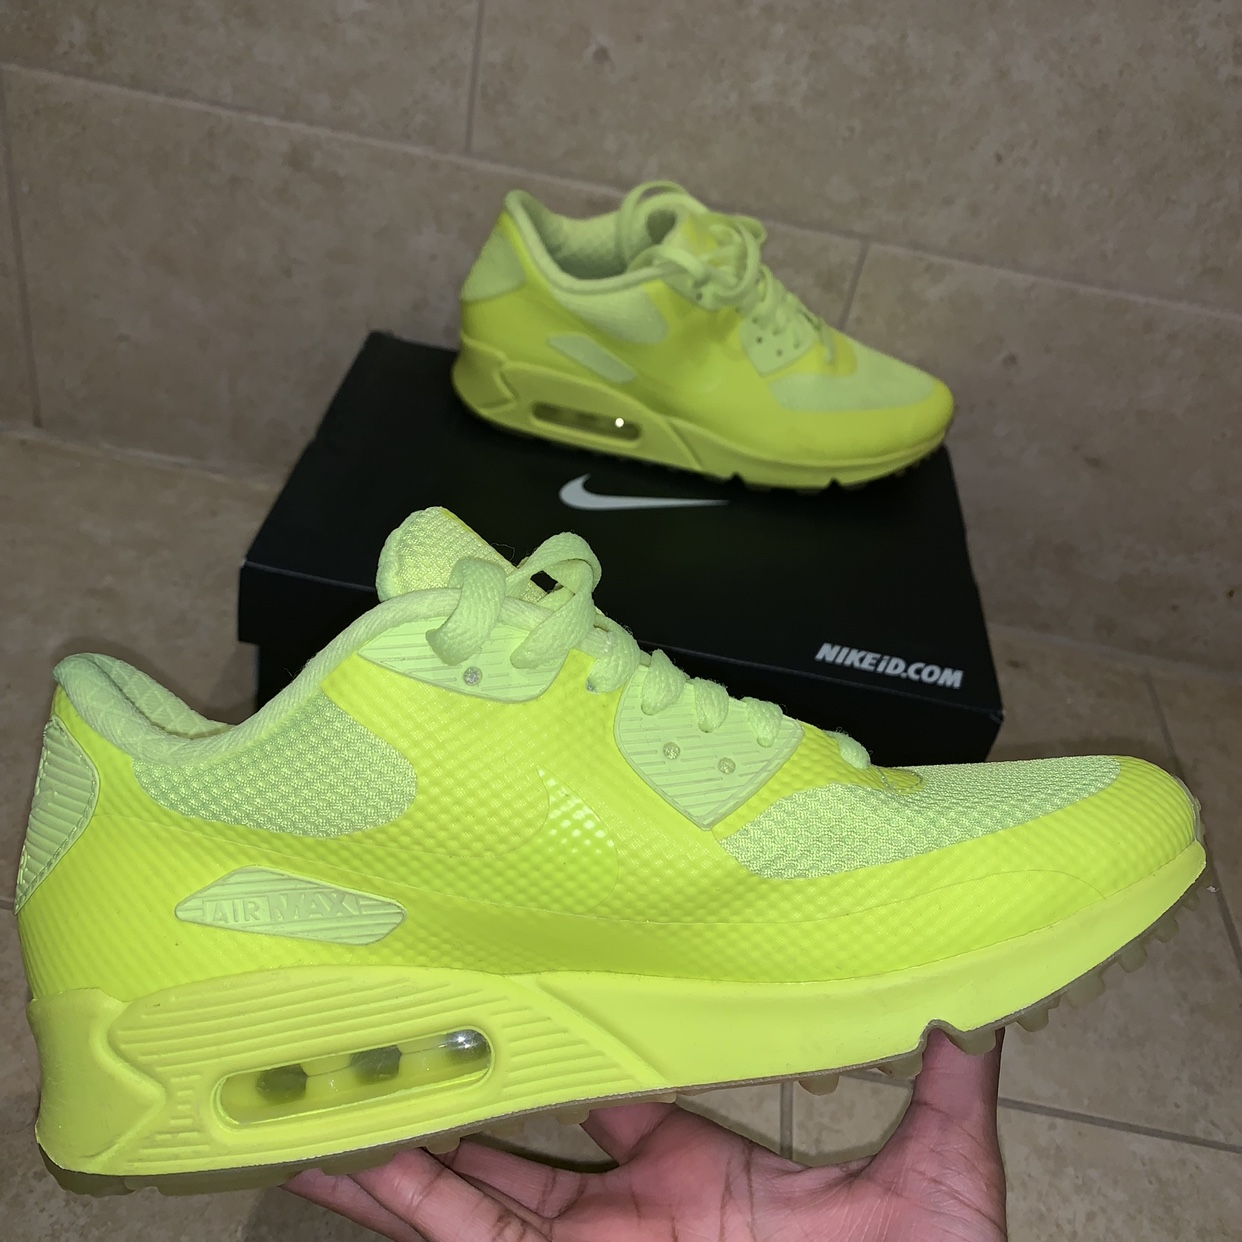 Neon yellow Nike Air Max ID's size 5.5. Worn a few Depop